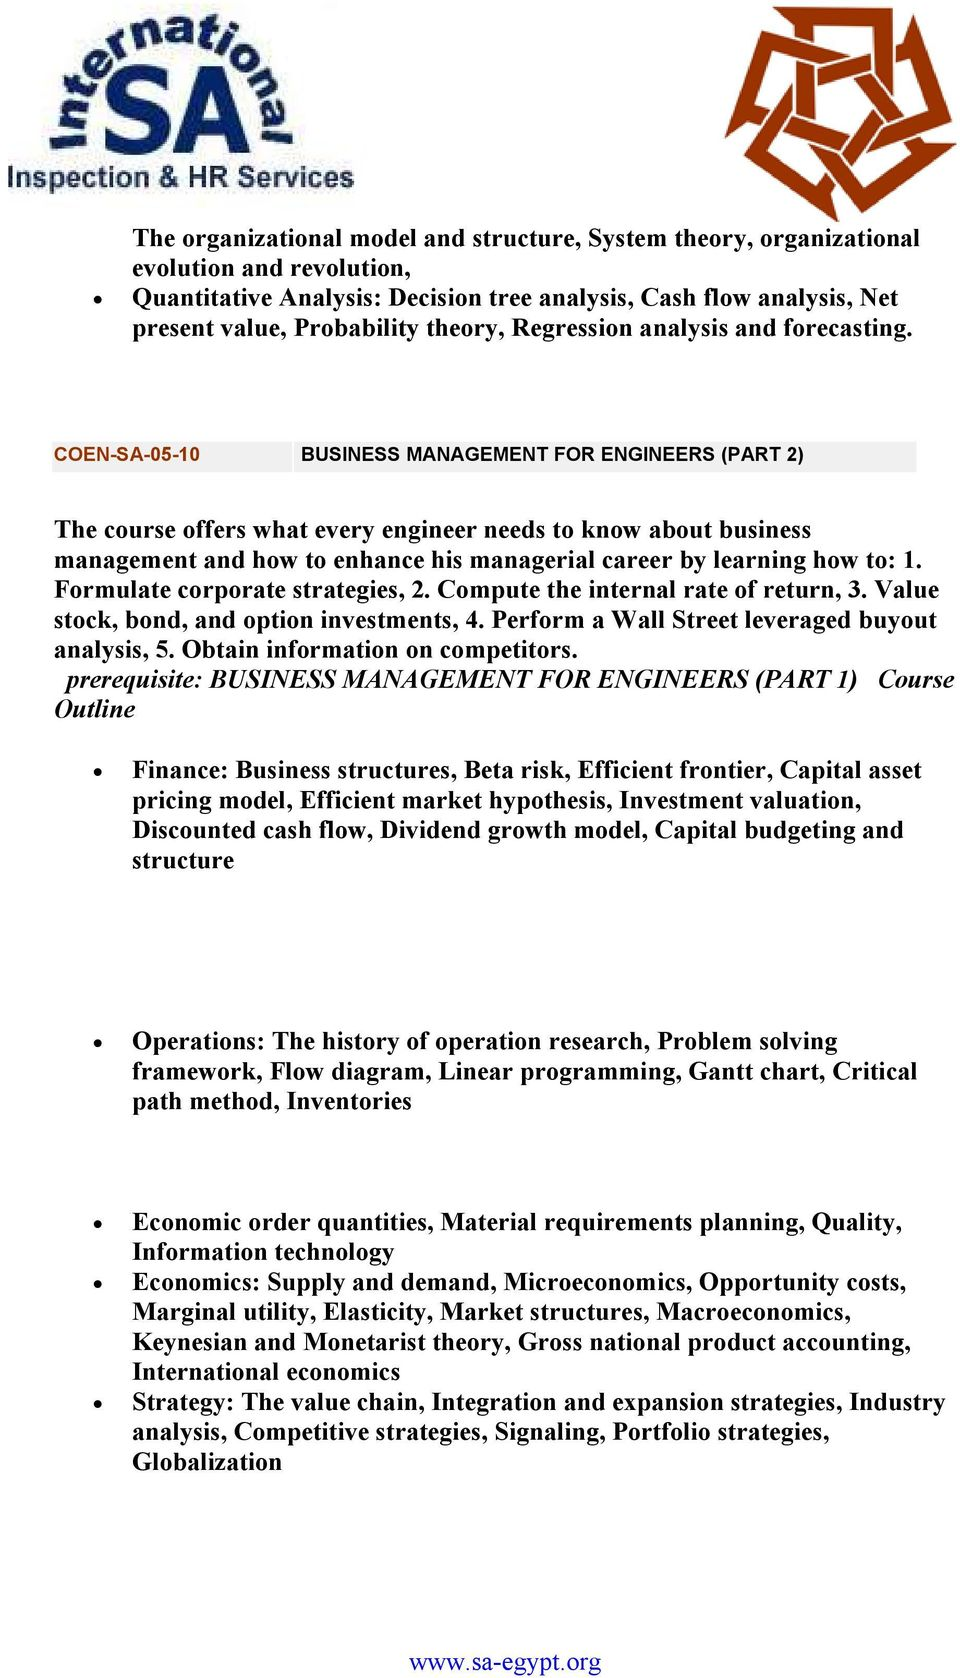 Management Courses for Engineers - PDF